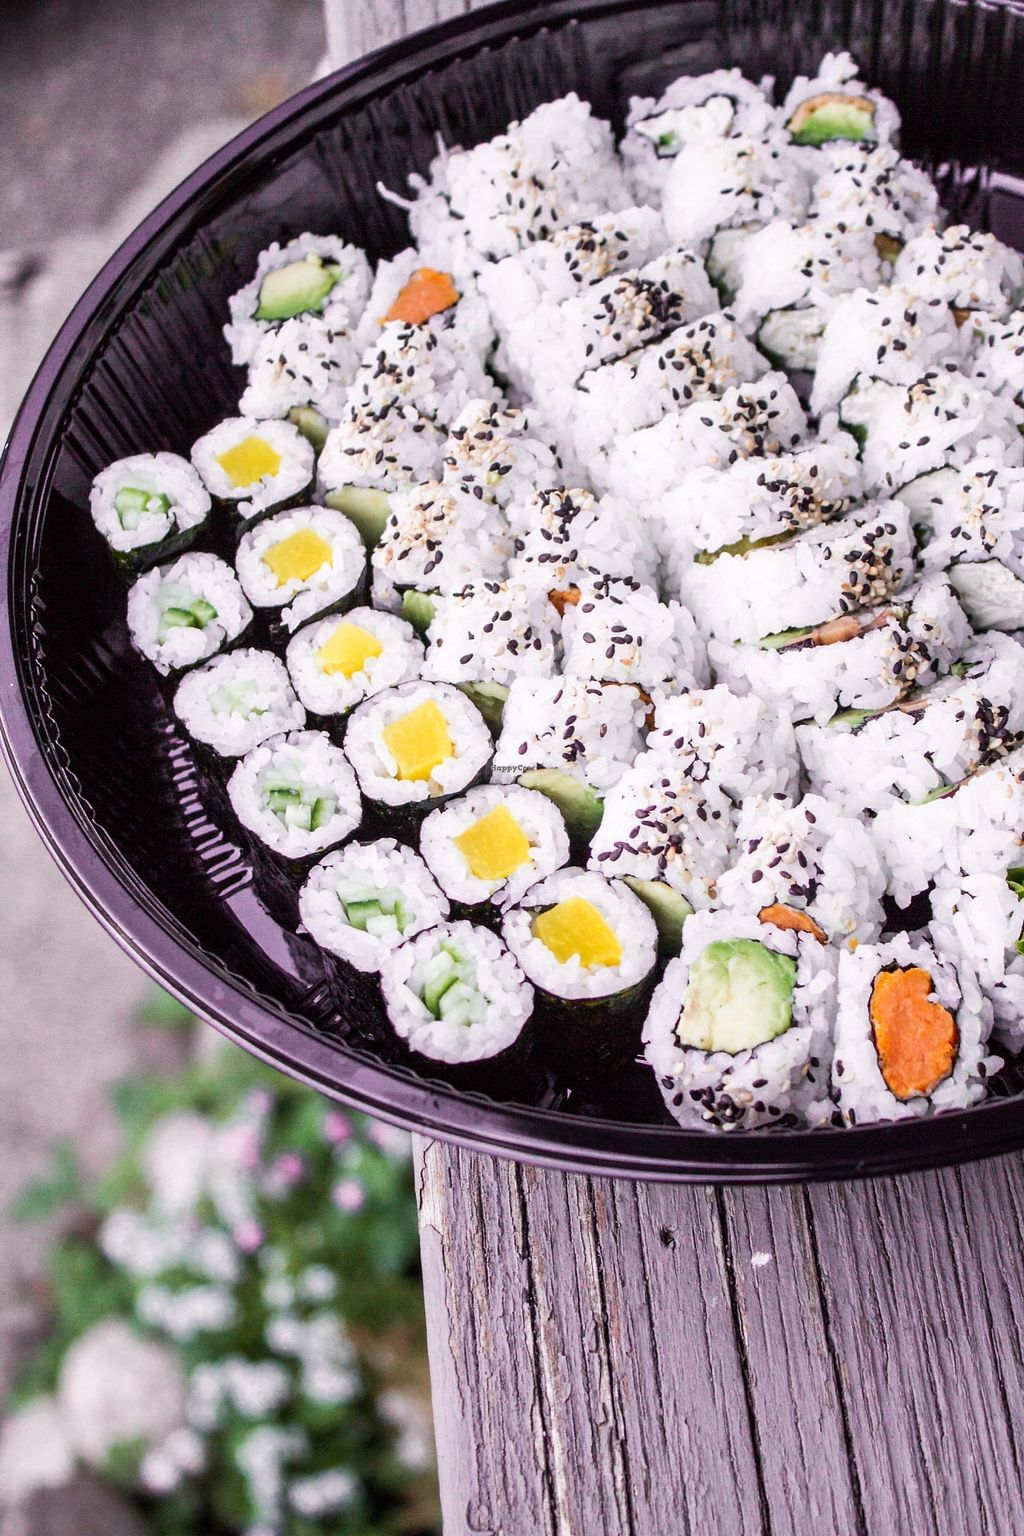 """Photo of Capilano Sushi  by <a href=""""/members/profile/jileila"""">jileila</a> <br/>Veggie Party Tray <br/> November 10, 2017  - <a href='/contact/abuse/image/104711/323777'>Report</a>"""